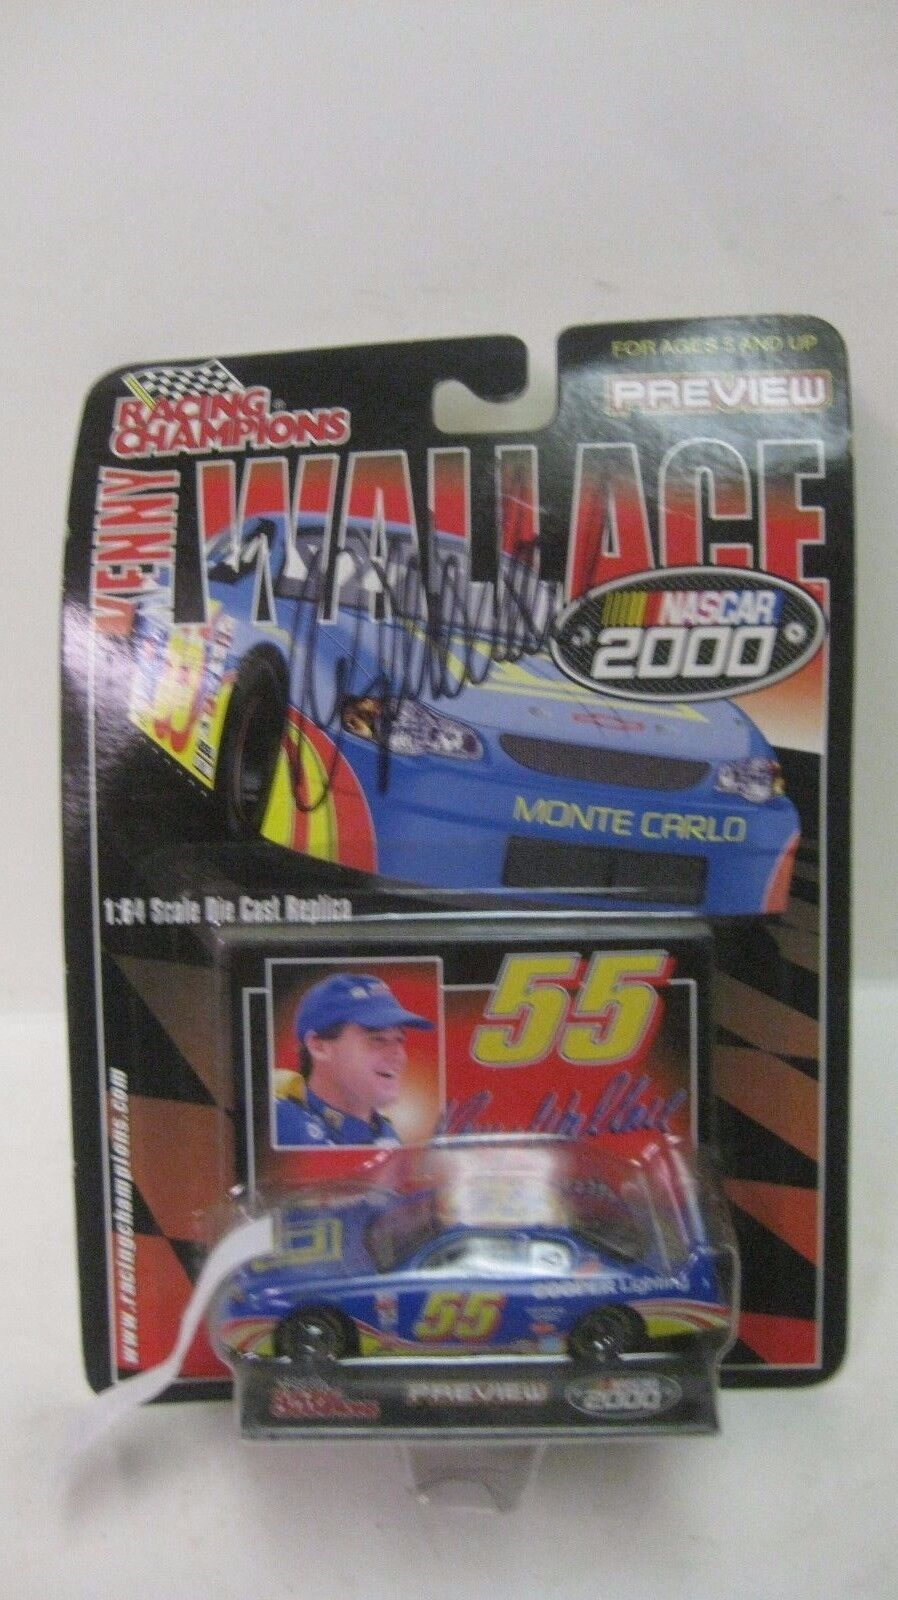 Rare Nascar 2000 Kenny Wallace Autographed Monte Carlo 1 64 Diecast NEW dc1412